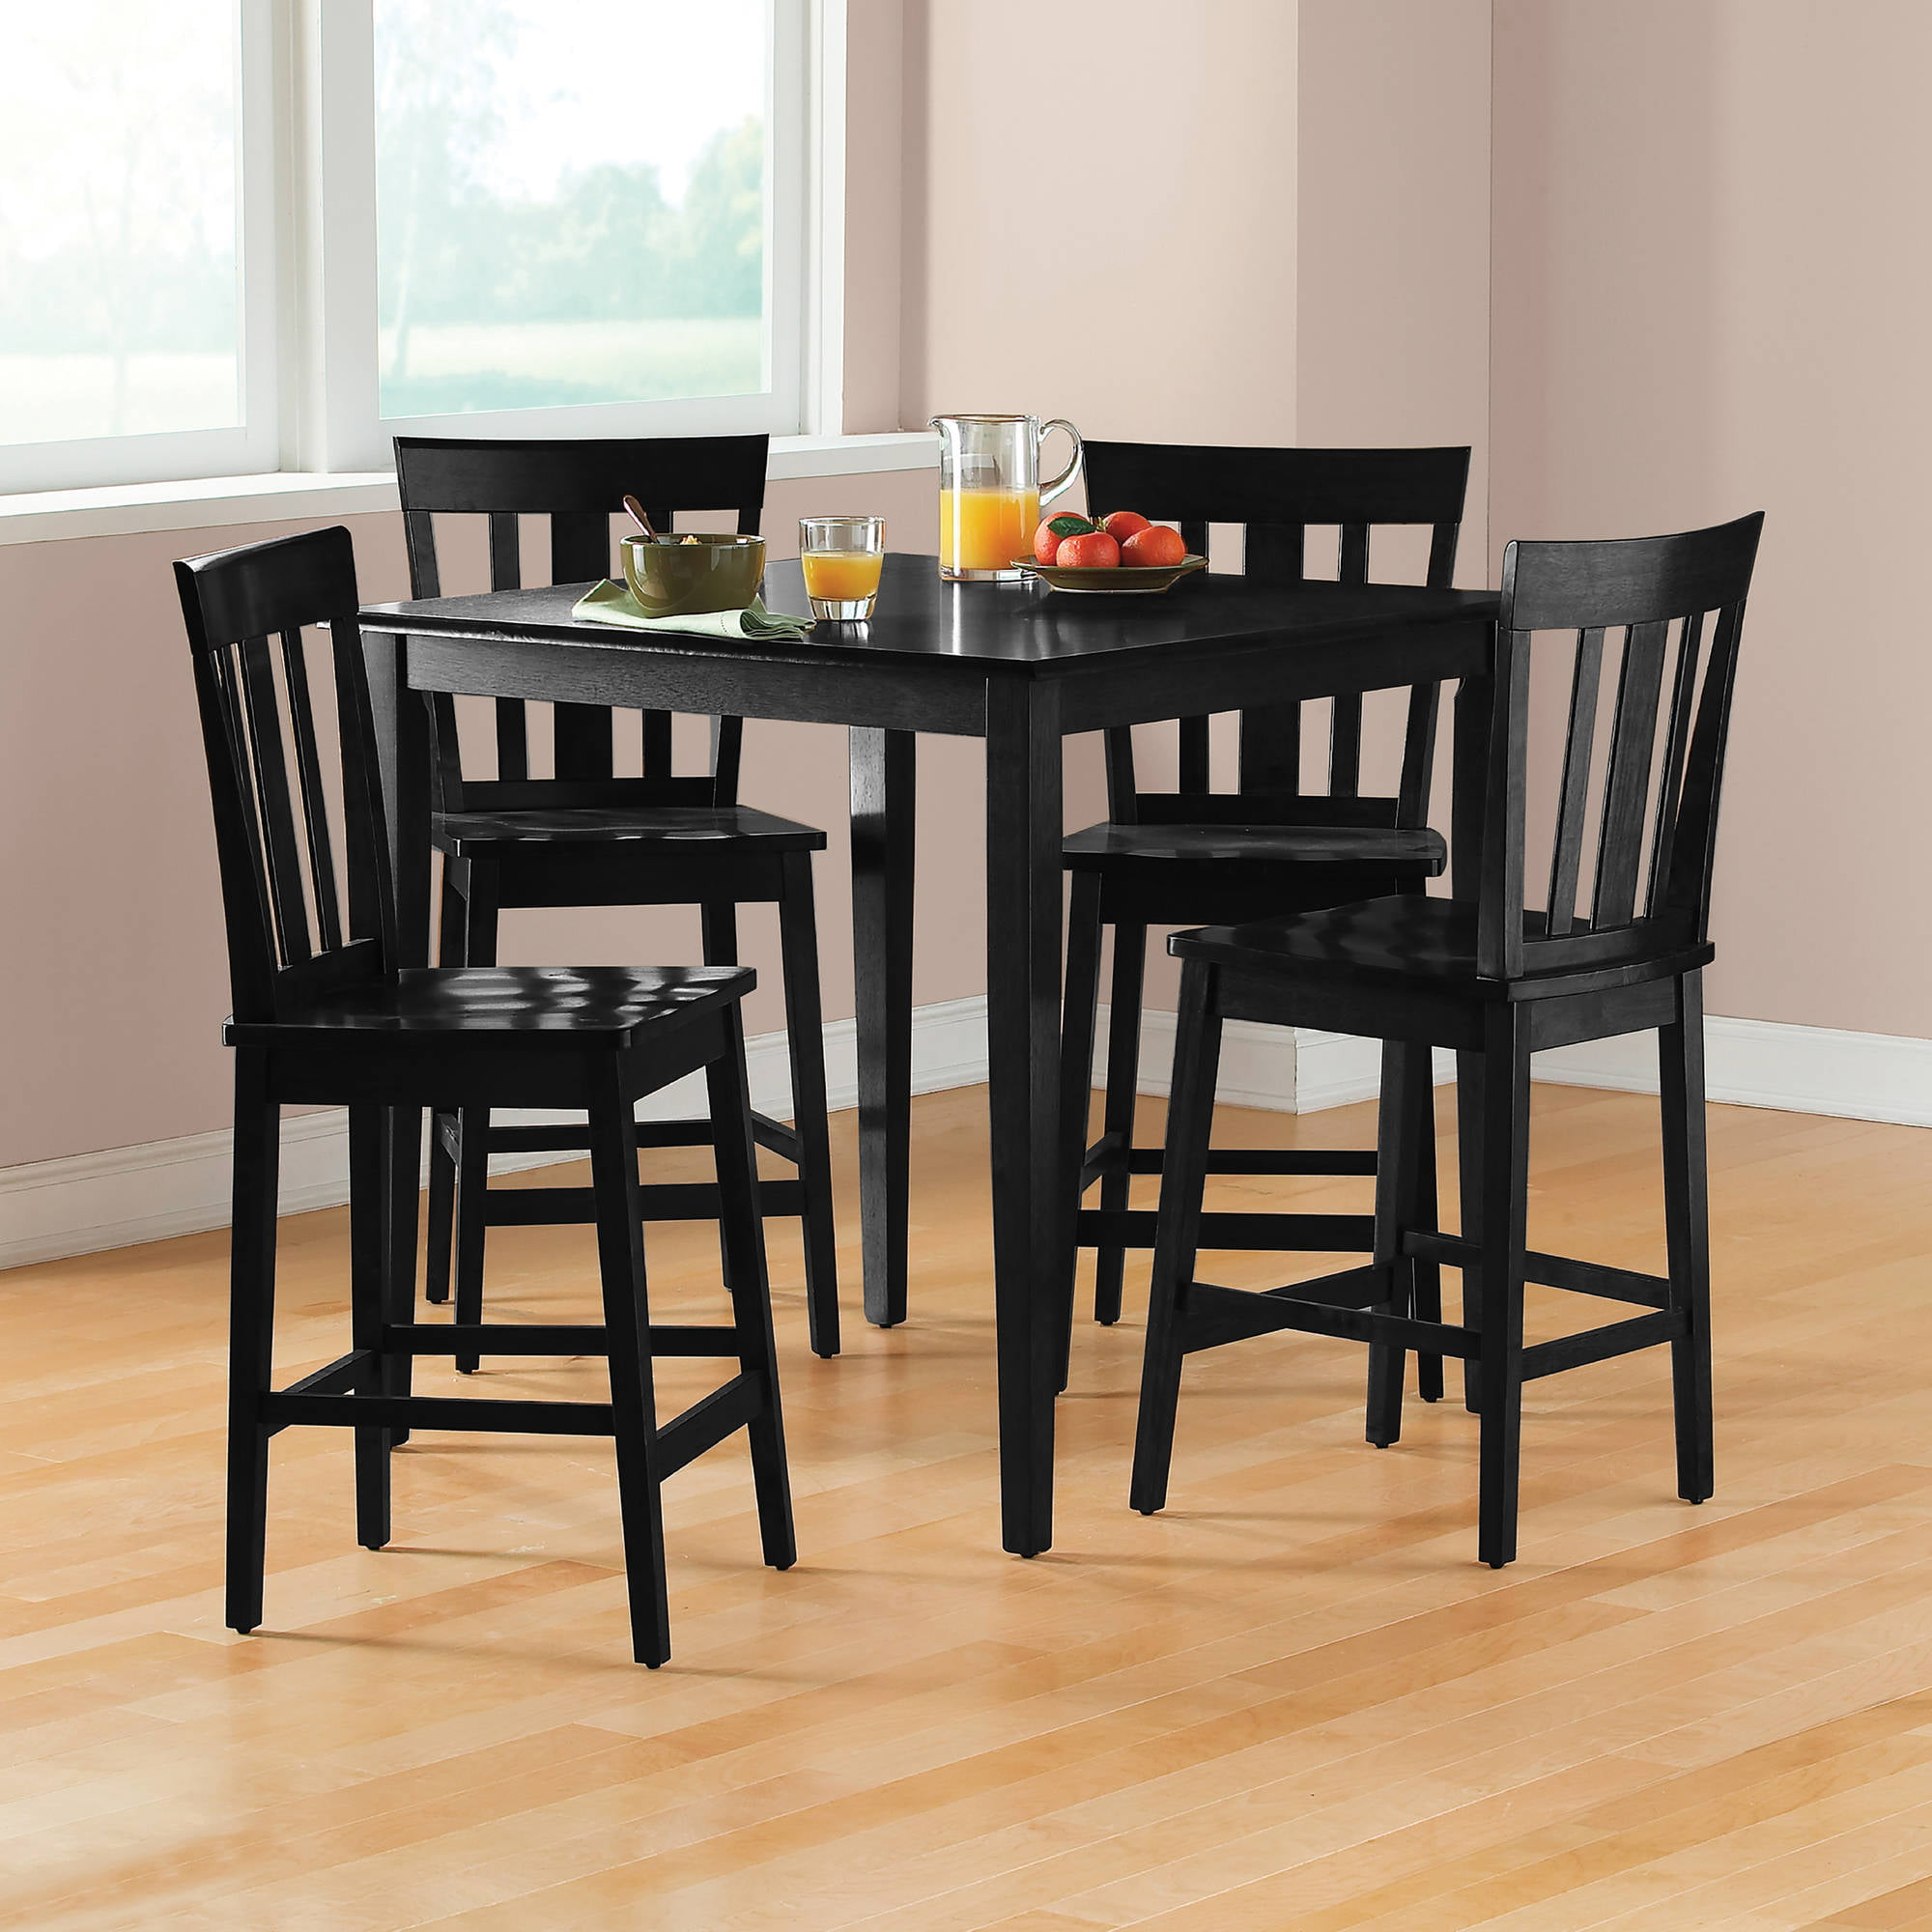 Mainstays 5 Piece Counter Height Dining Set  Multiple Colors   Walmart.com